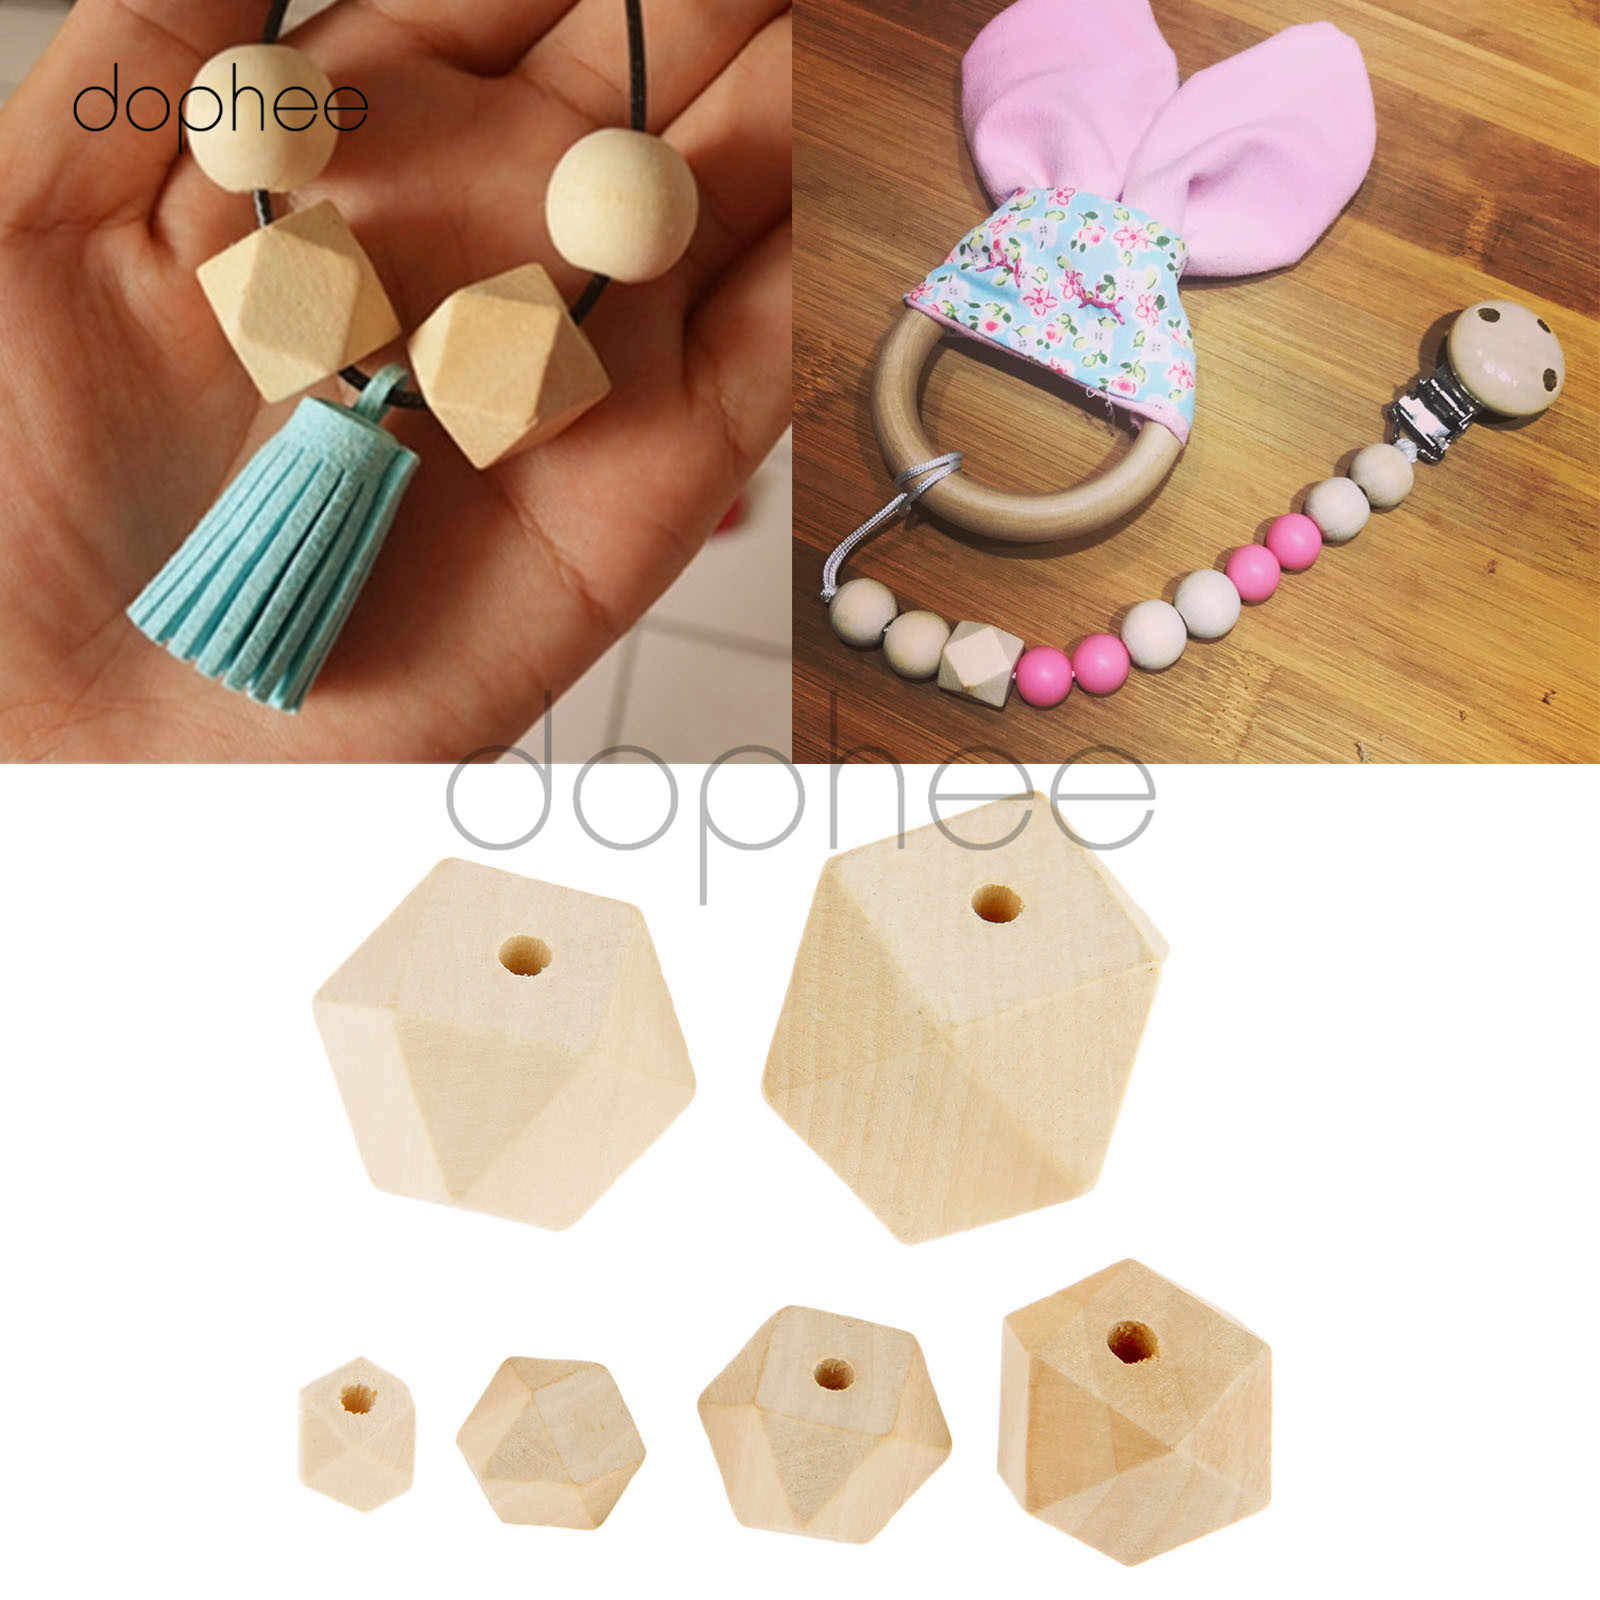 dophee 5-50pcs Natural Unfinished Wooden Geometric Beads Multi-Sized 10/12/14/20/25/30mm For Jewelry Necklace Making DIY